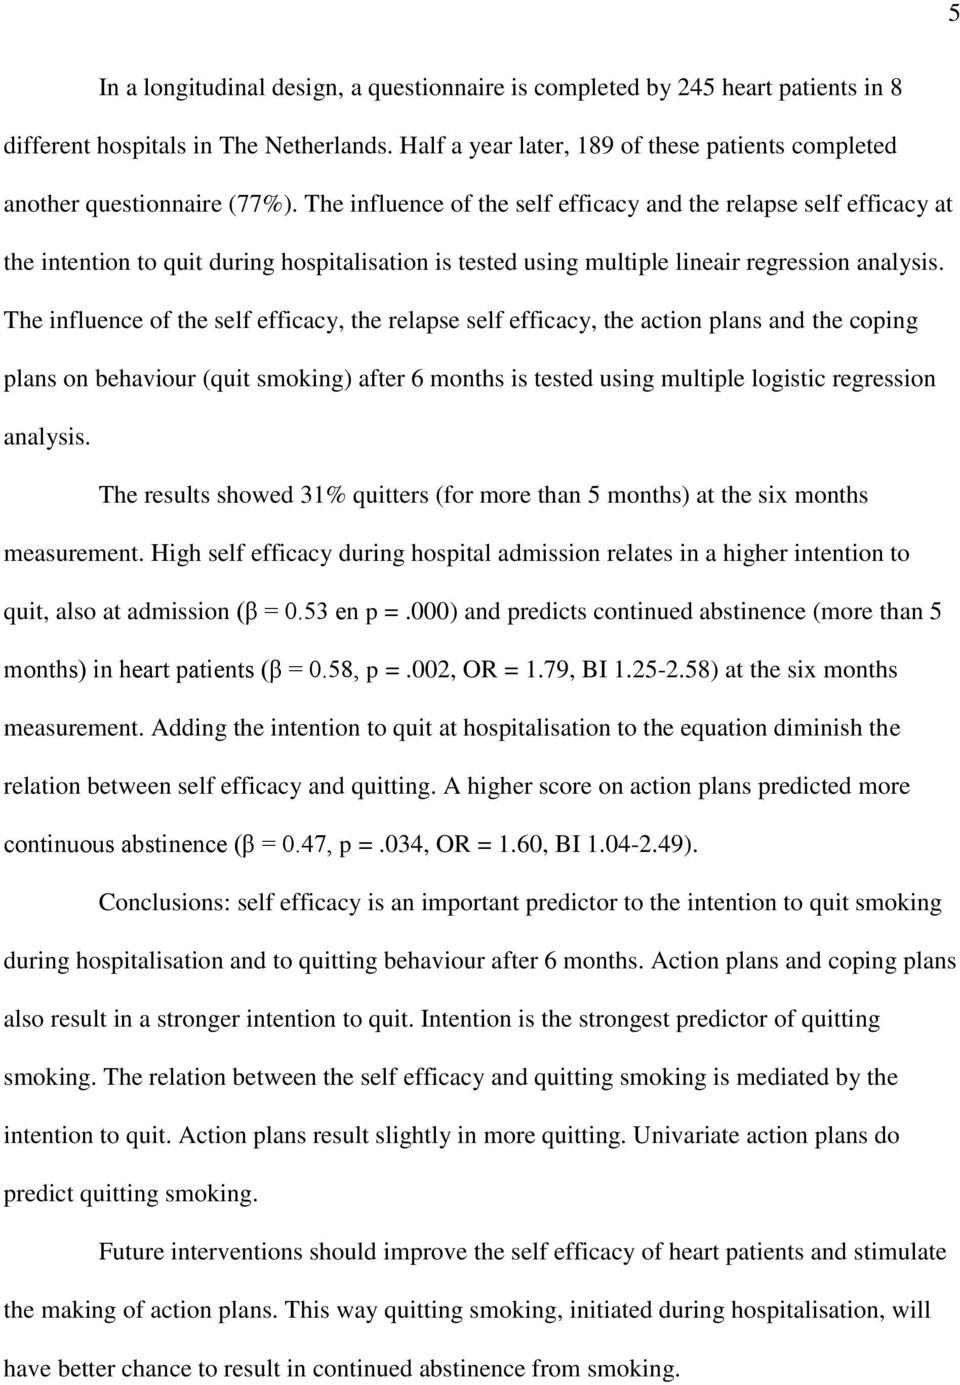 The influence of the self efficacy and the relapse self efficacy at the intention to quit during hospitalisation is tested using multiple lineair regression analysis.